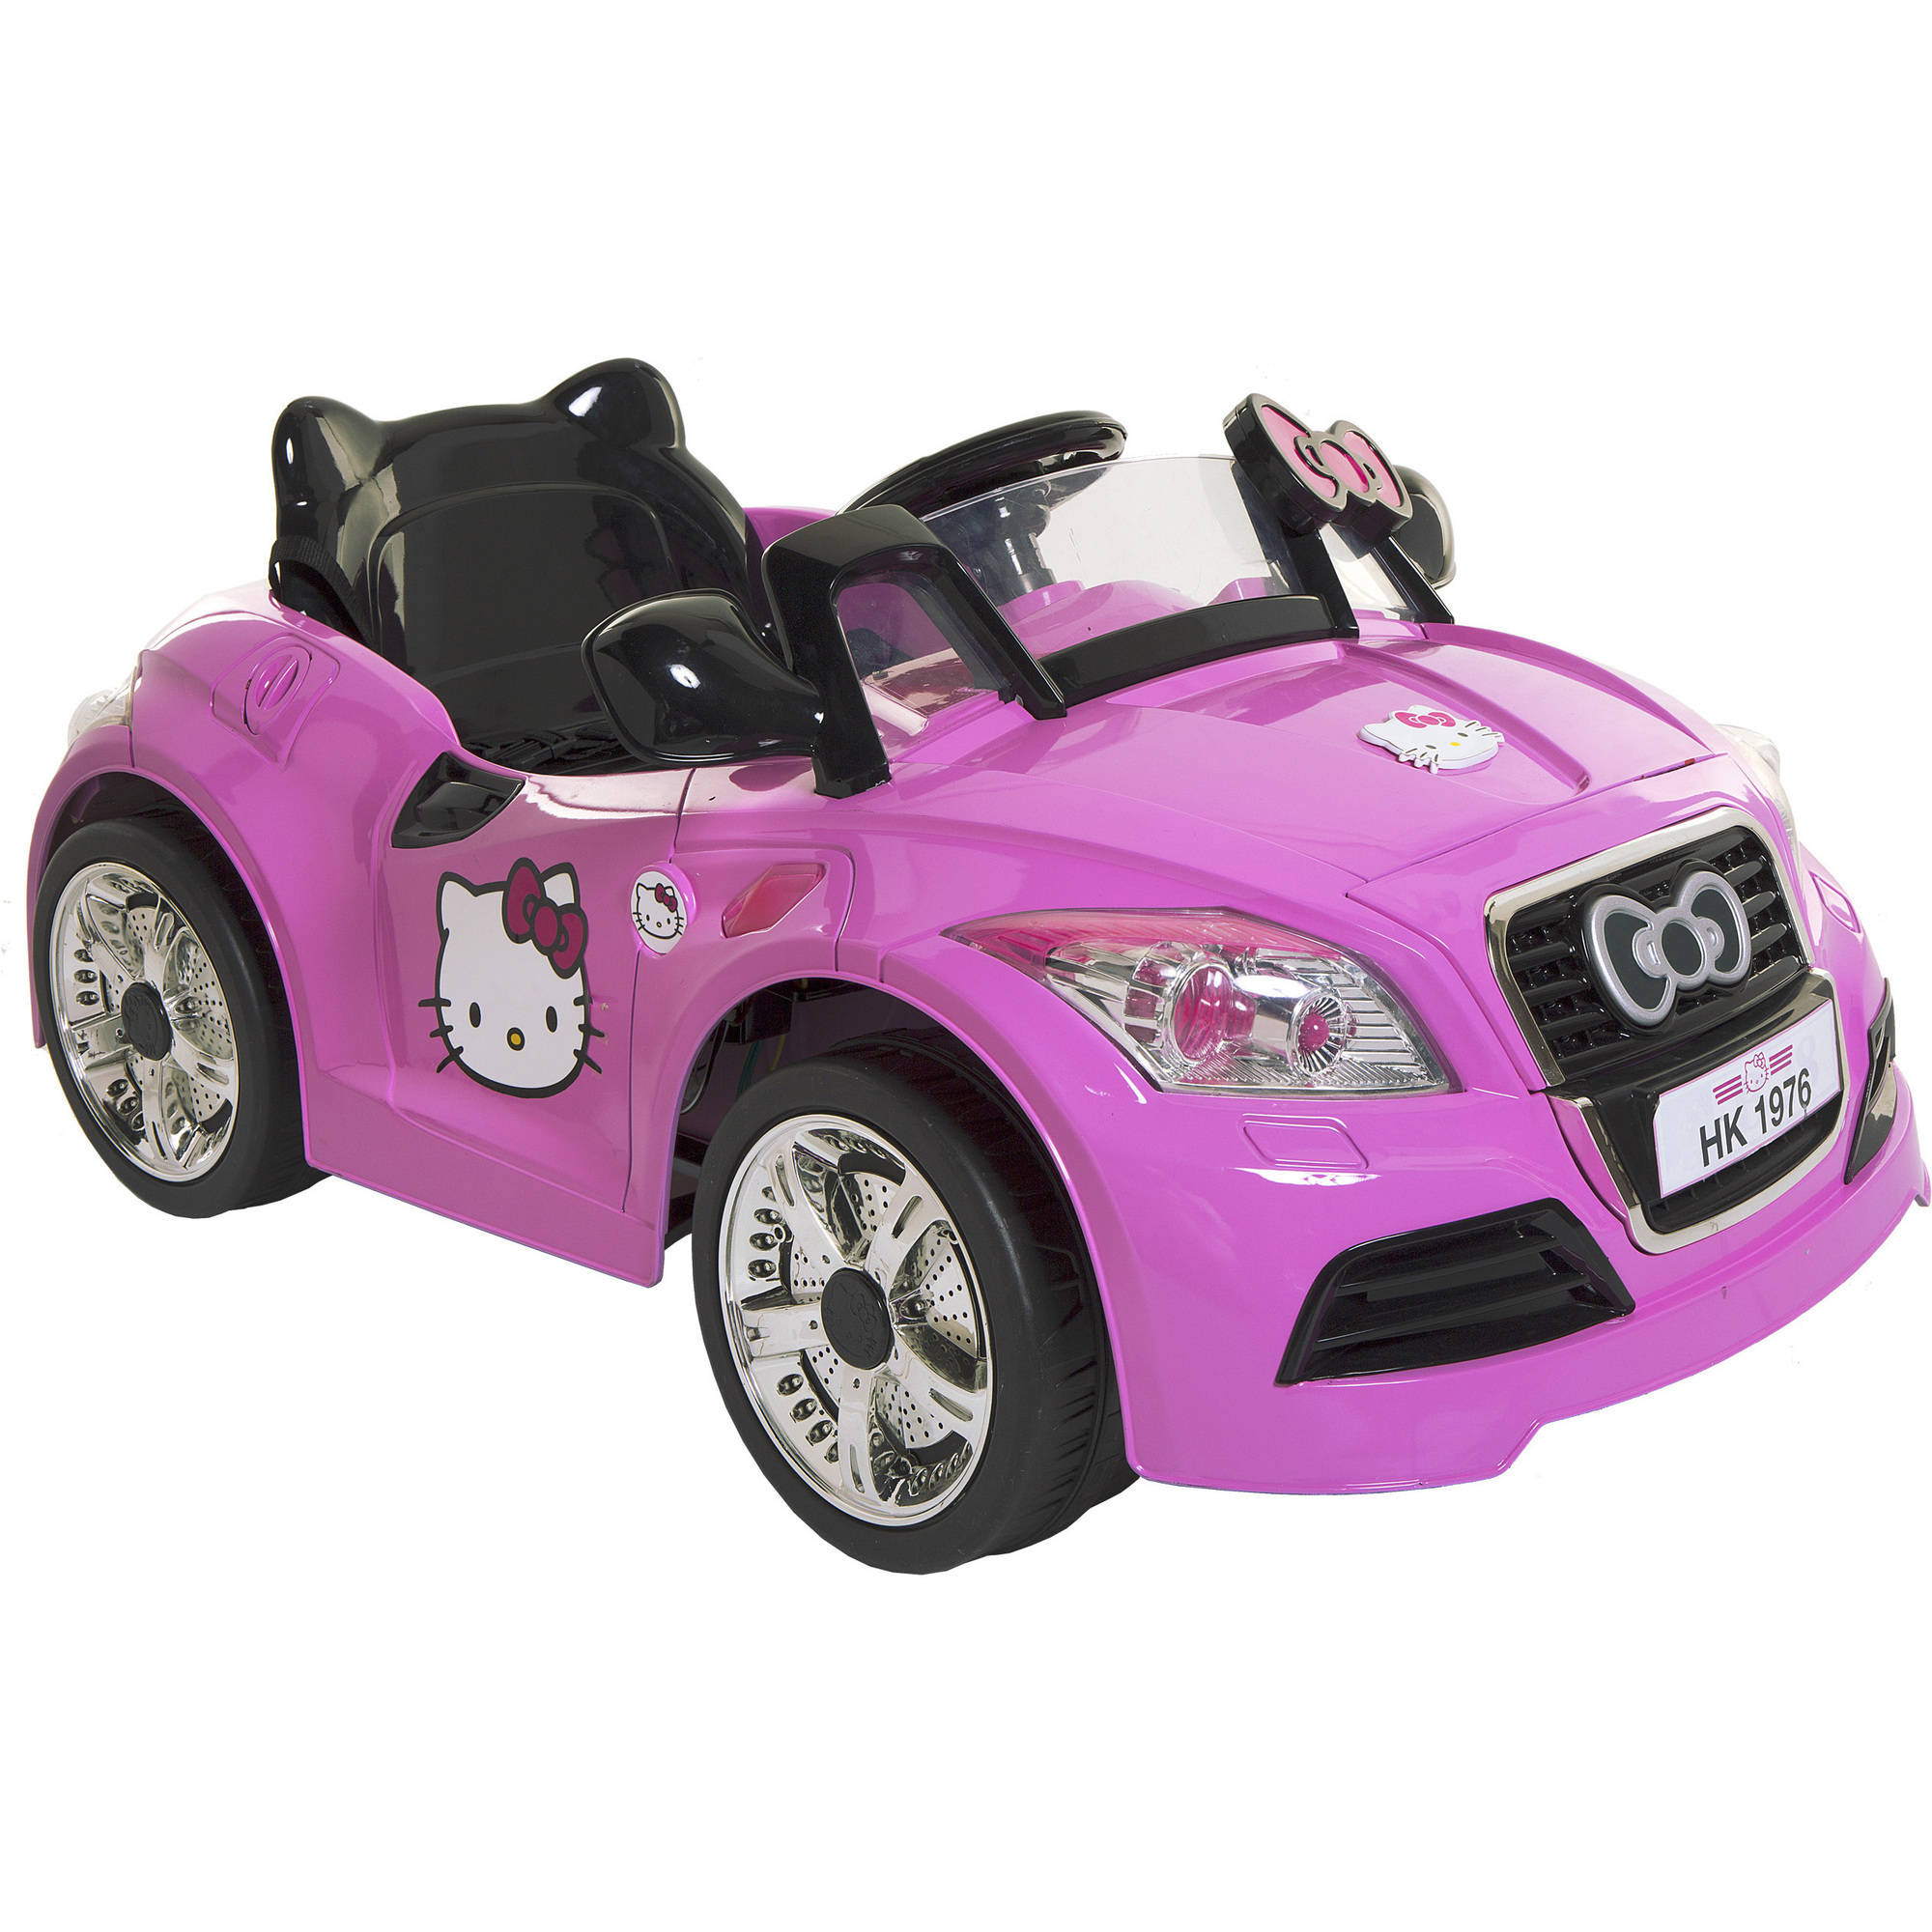 Costway Kids Ride ATV Quad 4 Wheeler Electric Toy Car 12V